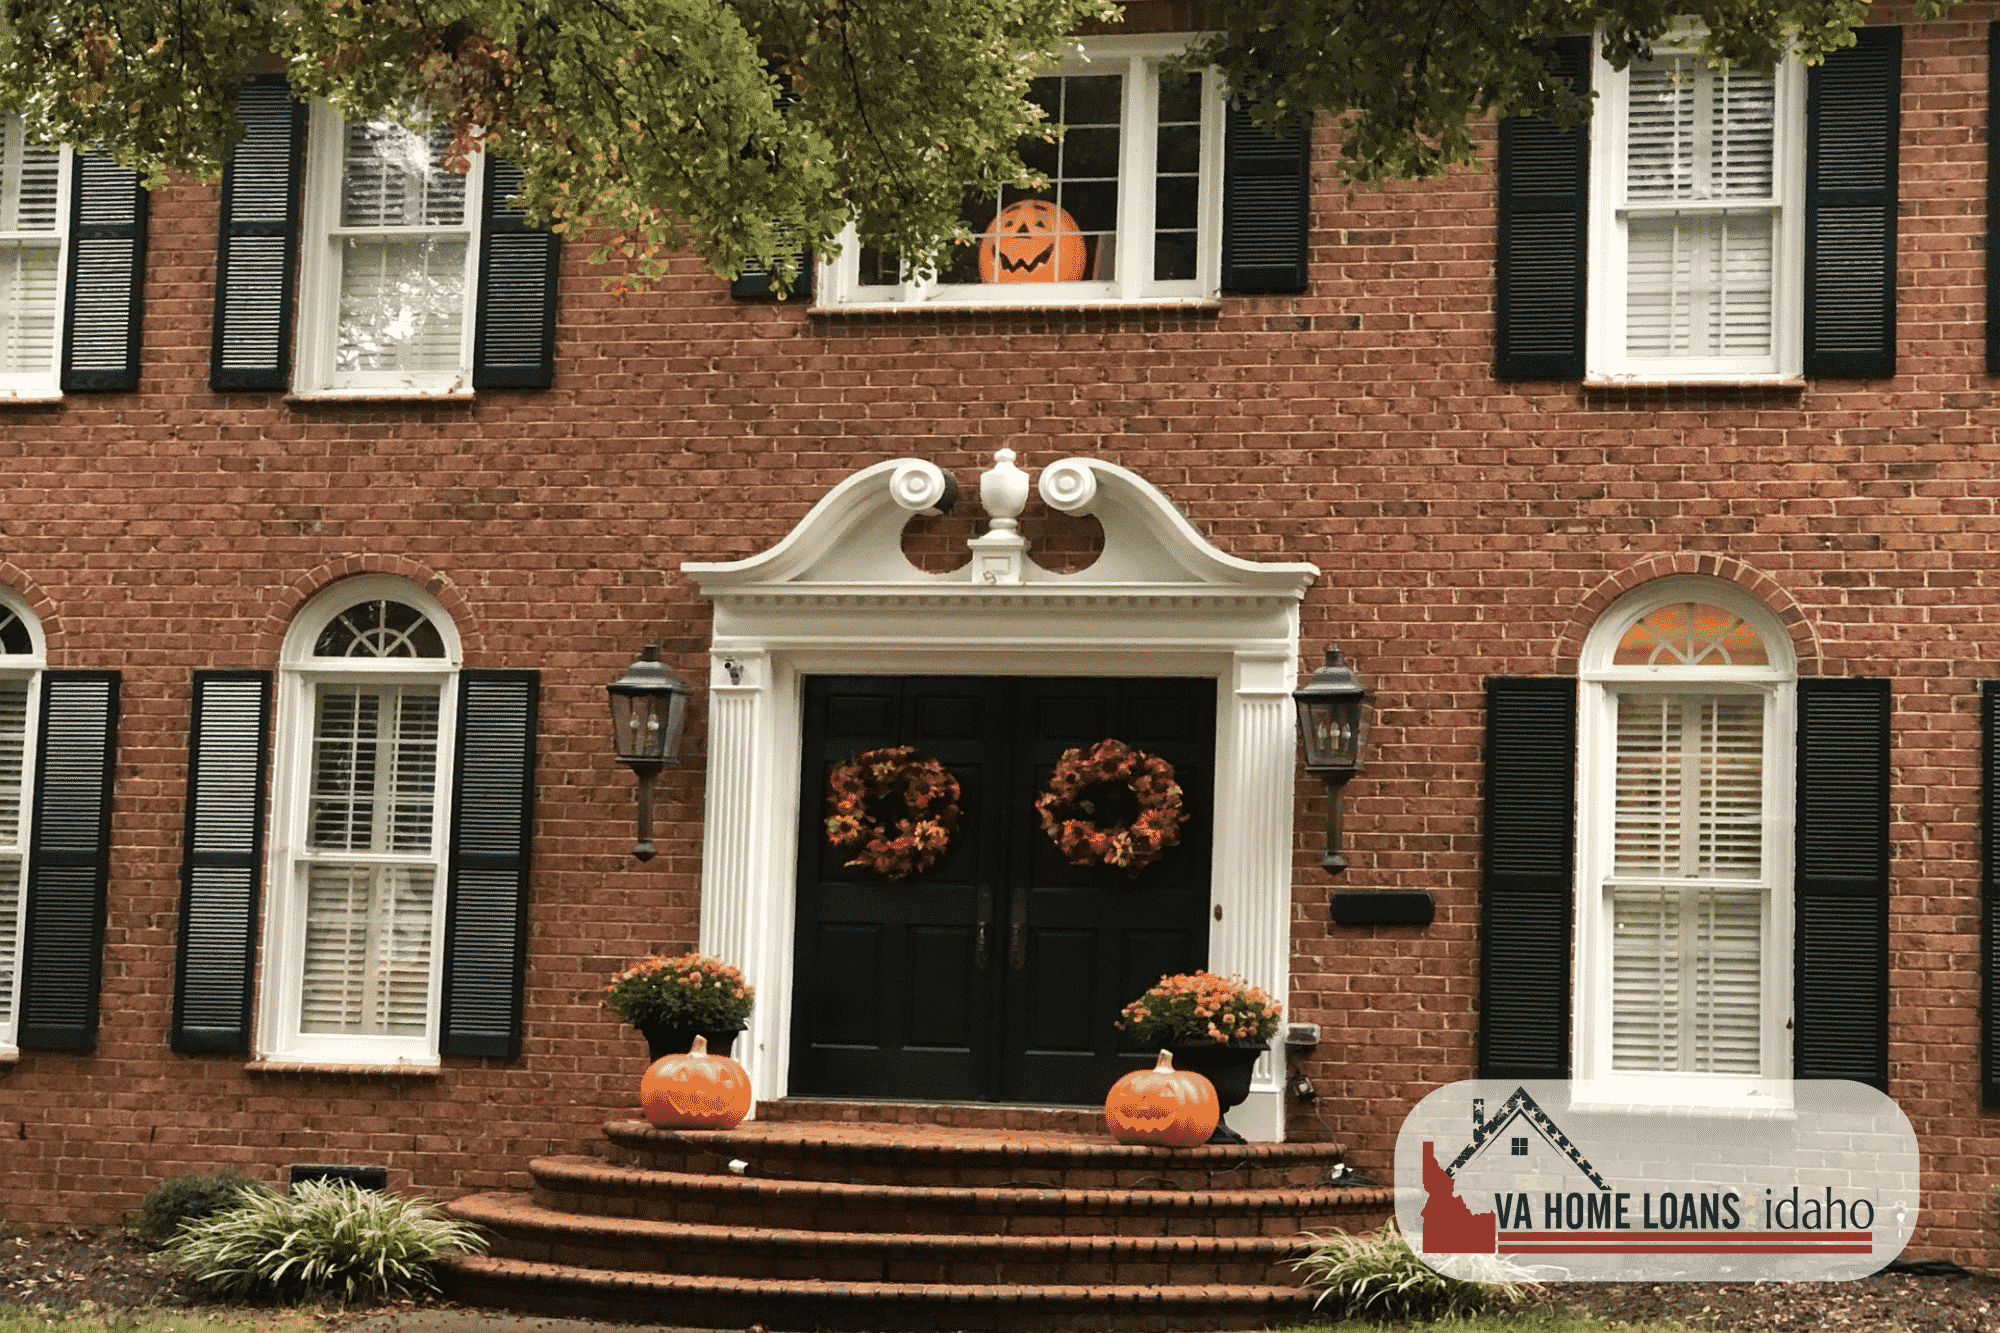 A fall decorated home, bought with a VA Home Loan